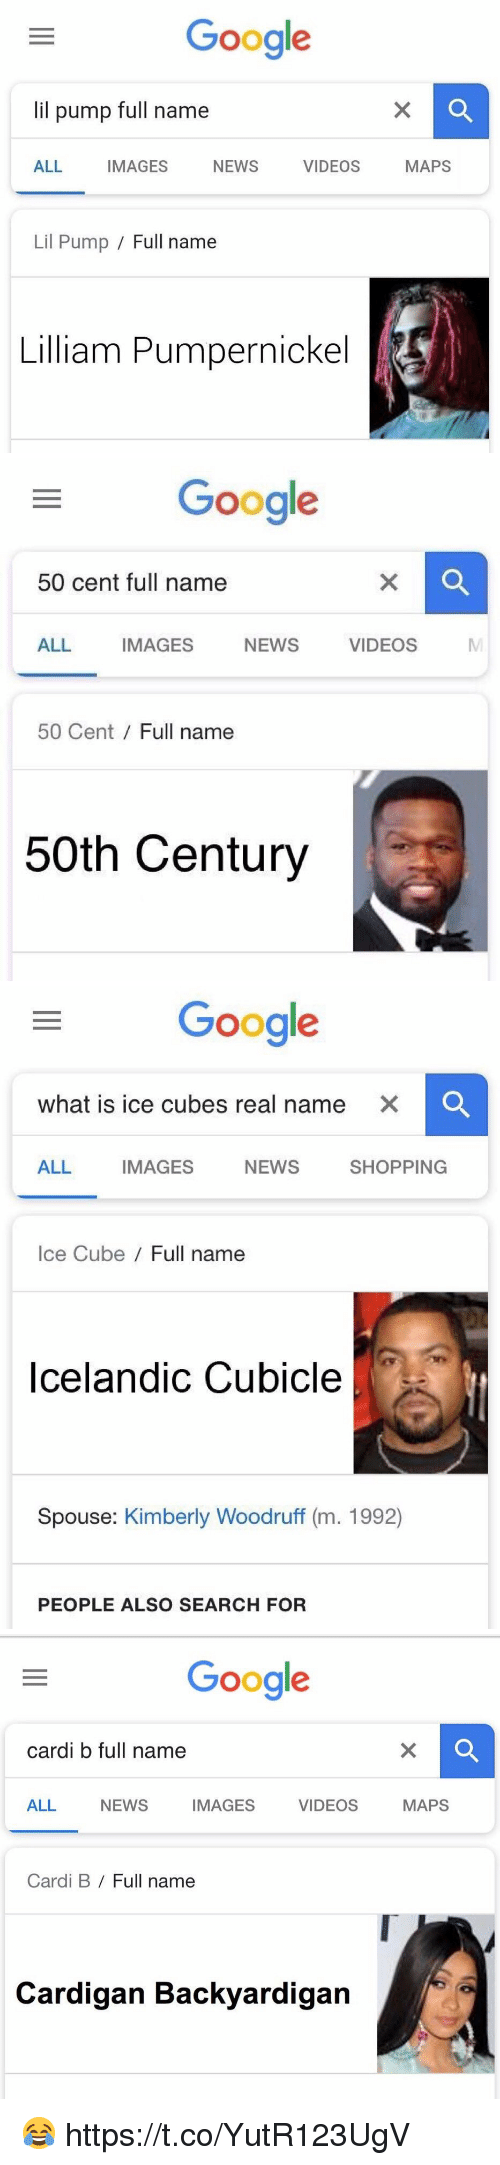 Ice Cube: Google  lil pump full name  ALL IMAGES NEWS VIDEOS MAPS  Lil Pump / Full name  Lilliam Pumpernickel   Google  50 cent full name  ALL IMAGES NEWS VIDEOS  MI  50 Cent Full name  50th Century   Google  what is ice cubes real name  XC  ALL IMAGES NEWS SHOPPING  Ice Cube/ Full name  Icelandic Cubicle  Spouse: Kimberly Woodruff (m. 1992)  PEOPLE ALSO SEARCH FOR   Google  cardi b full name  ALL NEWS IMAGES VIDEOS MAPS  Cardi B / Full name  Cardigan Backyardigan 😂 https://t.co/YutR123UgV